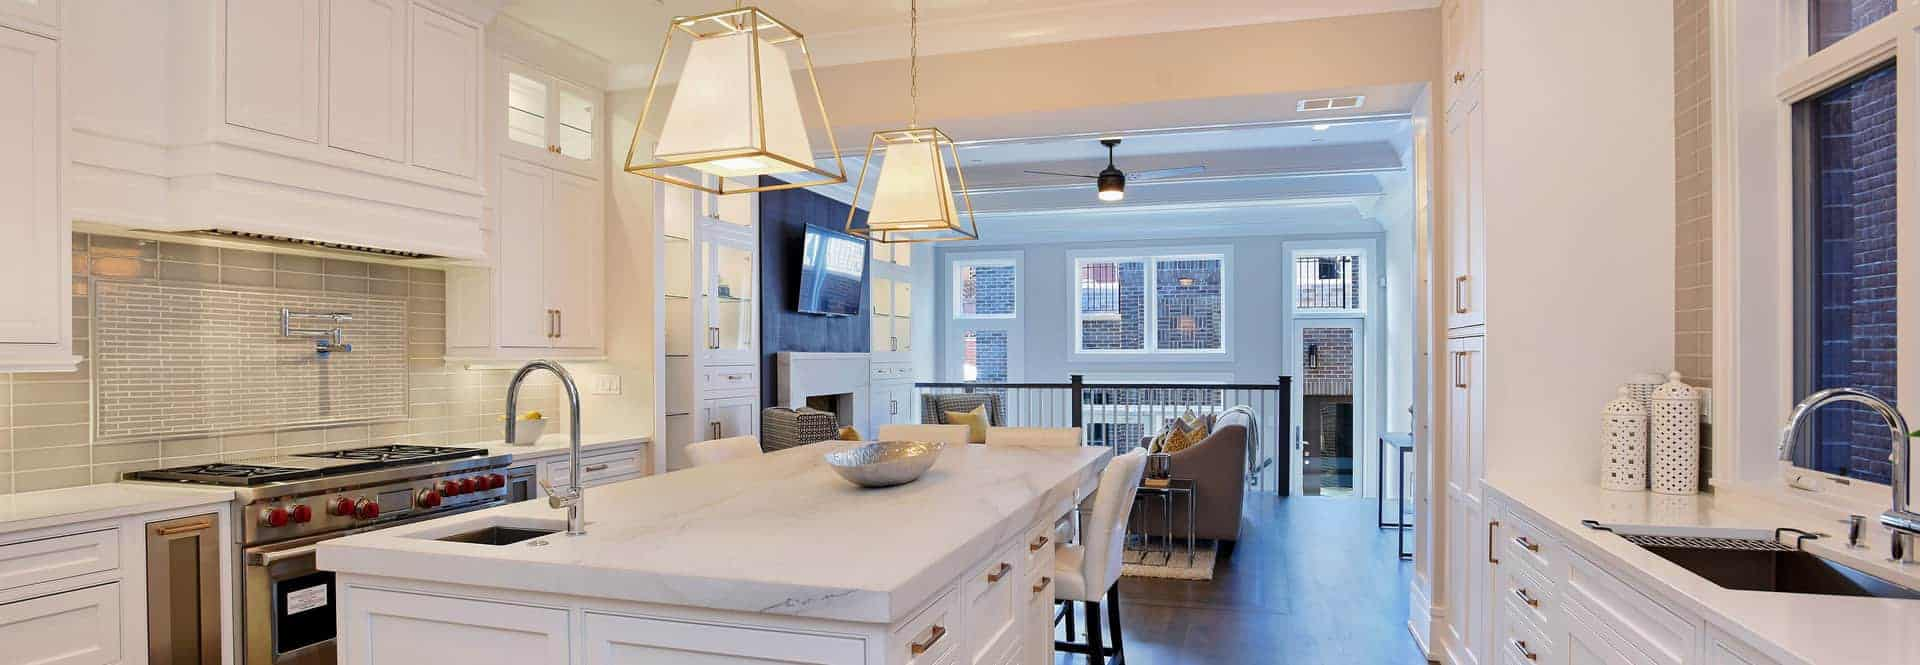 Kitchen with white colors